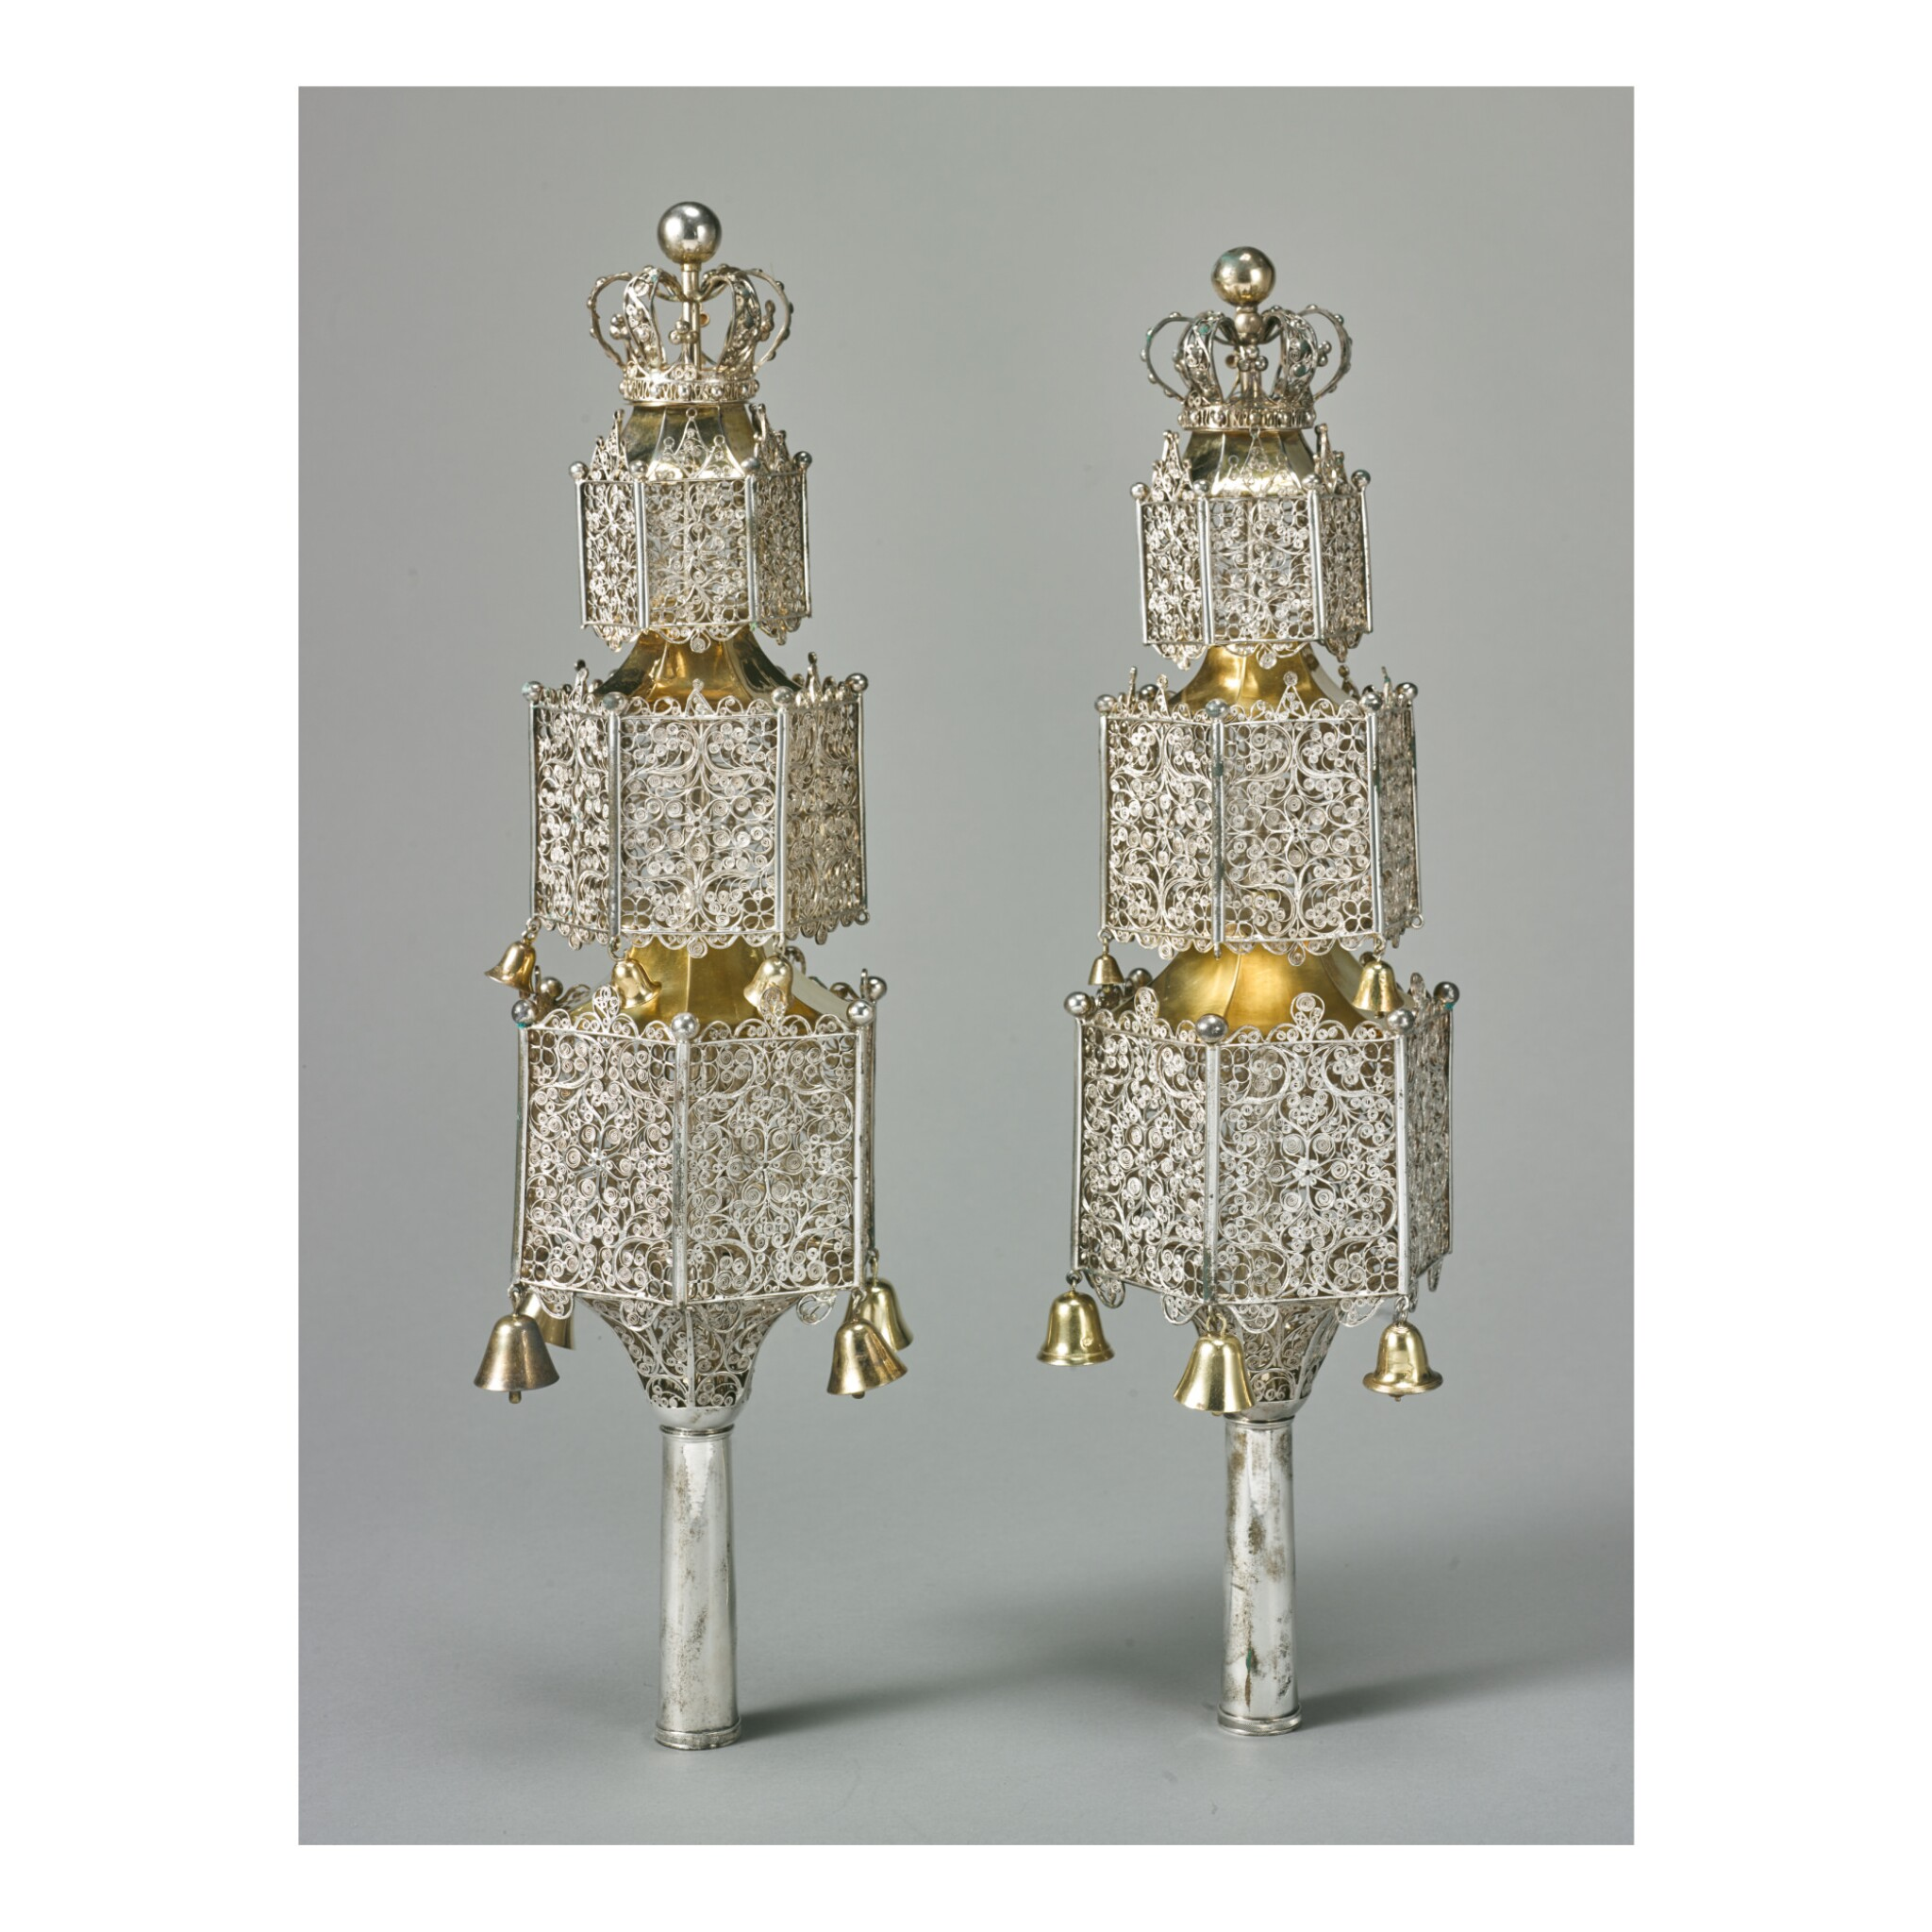 View full screen - View 1 of Lot 1. A PAIR OF LARGE DUTCH PARCEL-GILT SILVER AND FILIGREE TORAH FINIALS, HEDDE BUYS OF SHOONHOVEN, 1845.